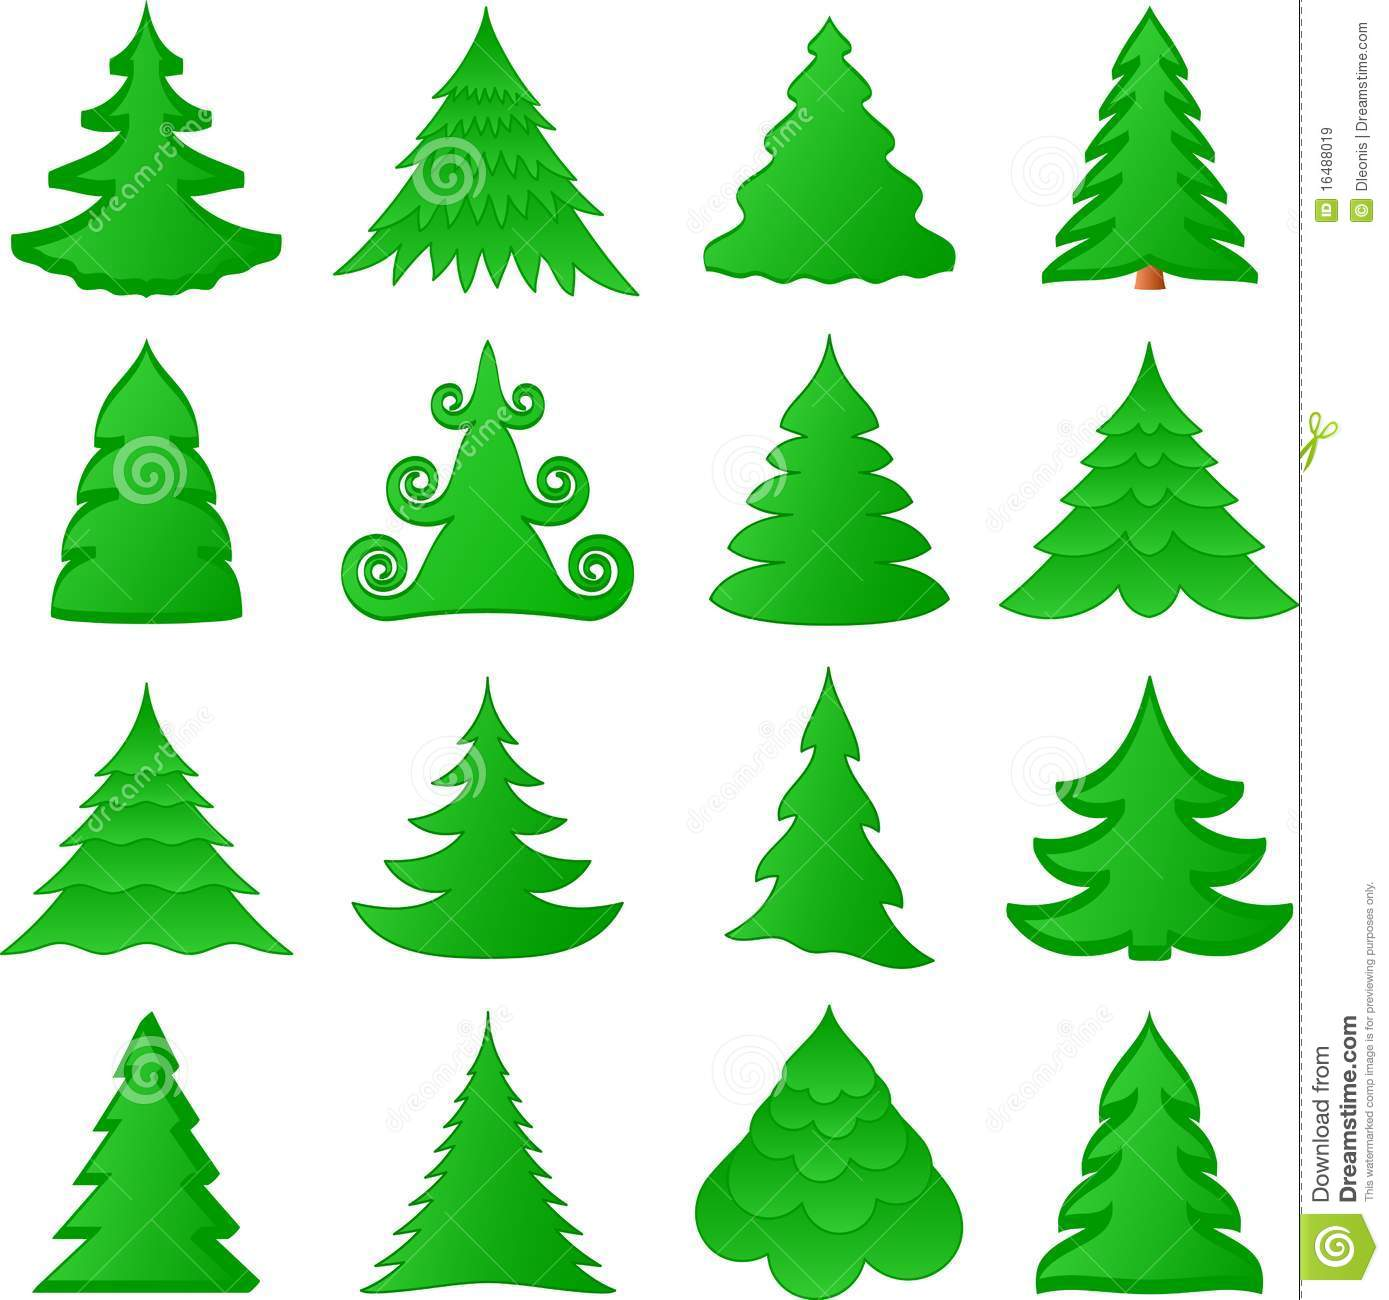 Christmas Tree Collection Trowbridge : Christmas trees collection royalty free stock images